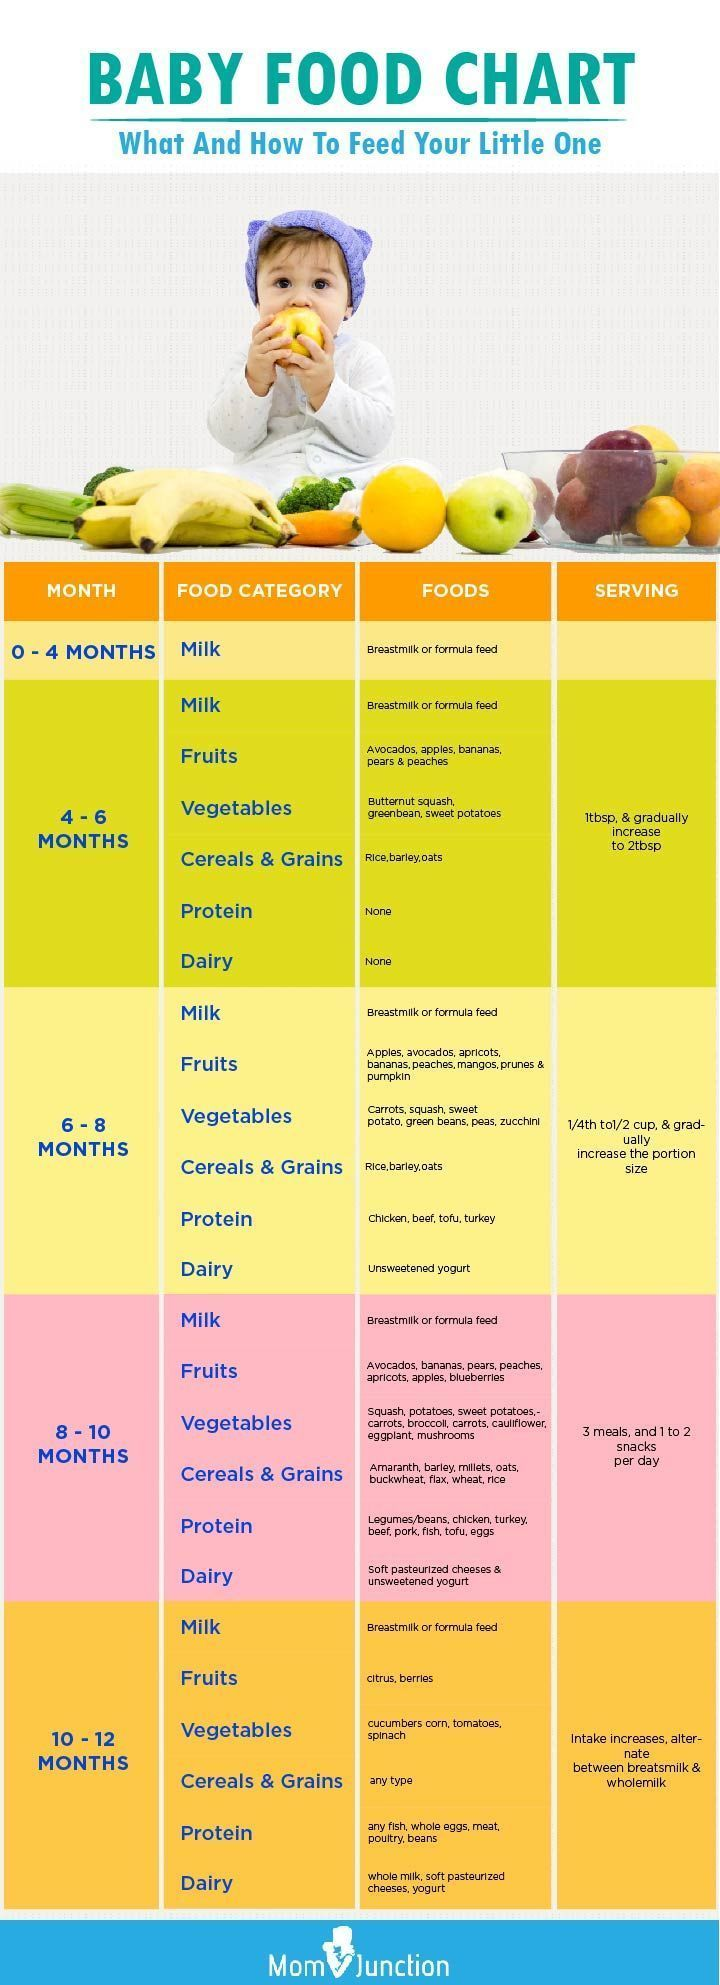 7 Essential Tips To Follow For Your Baby Food Chart #foodtips